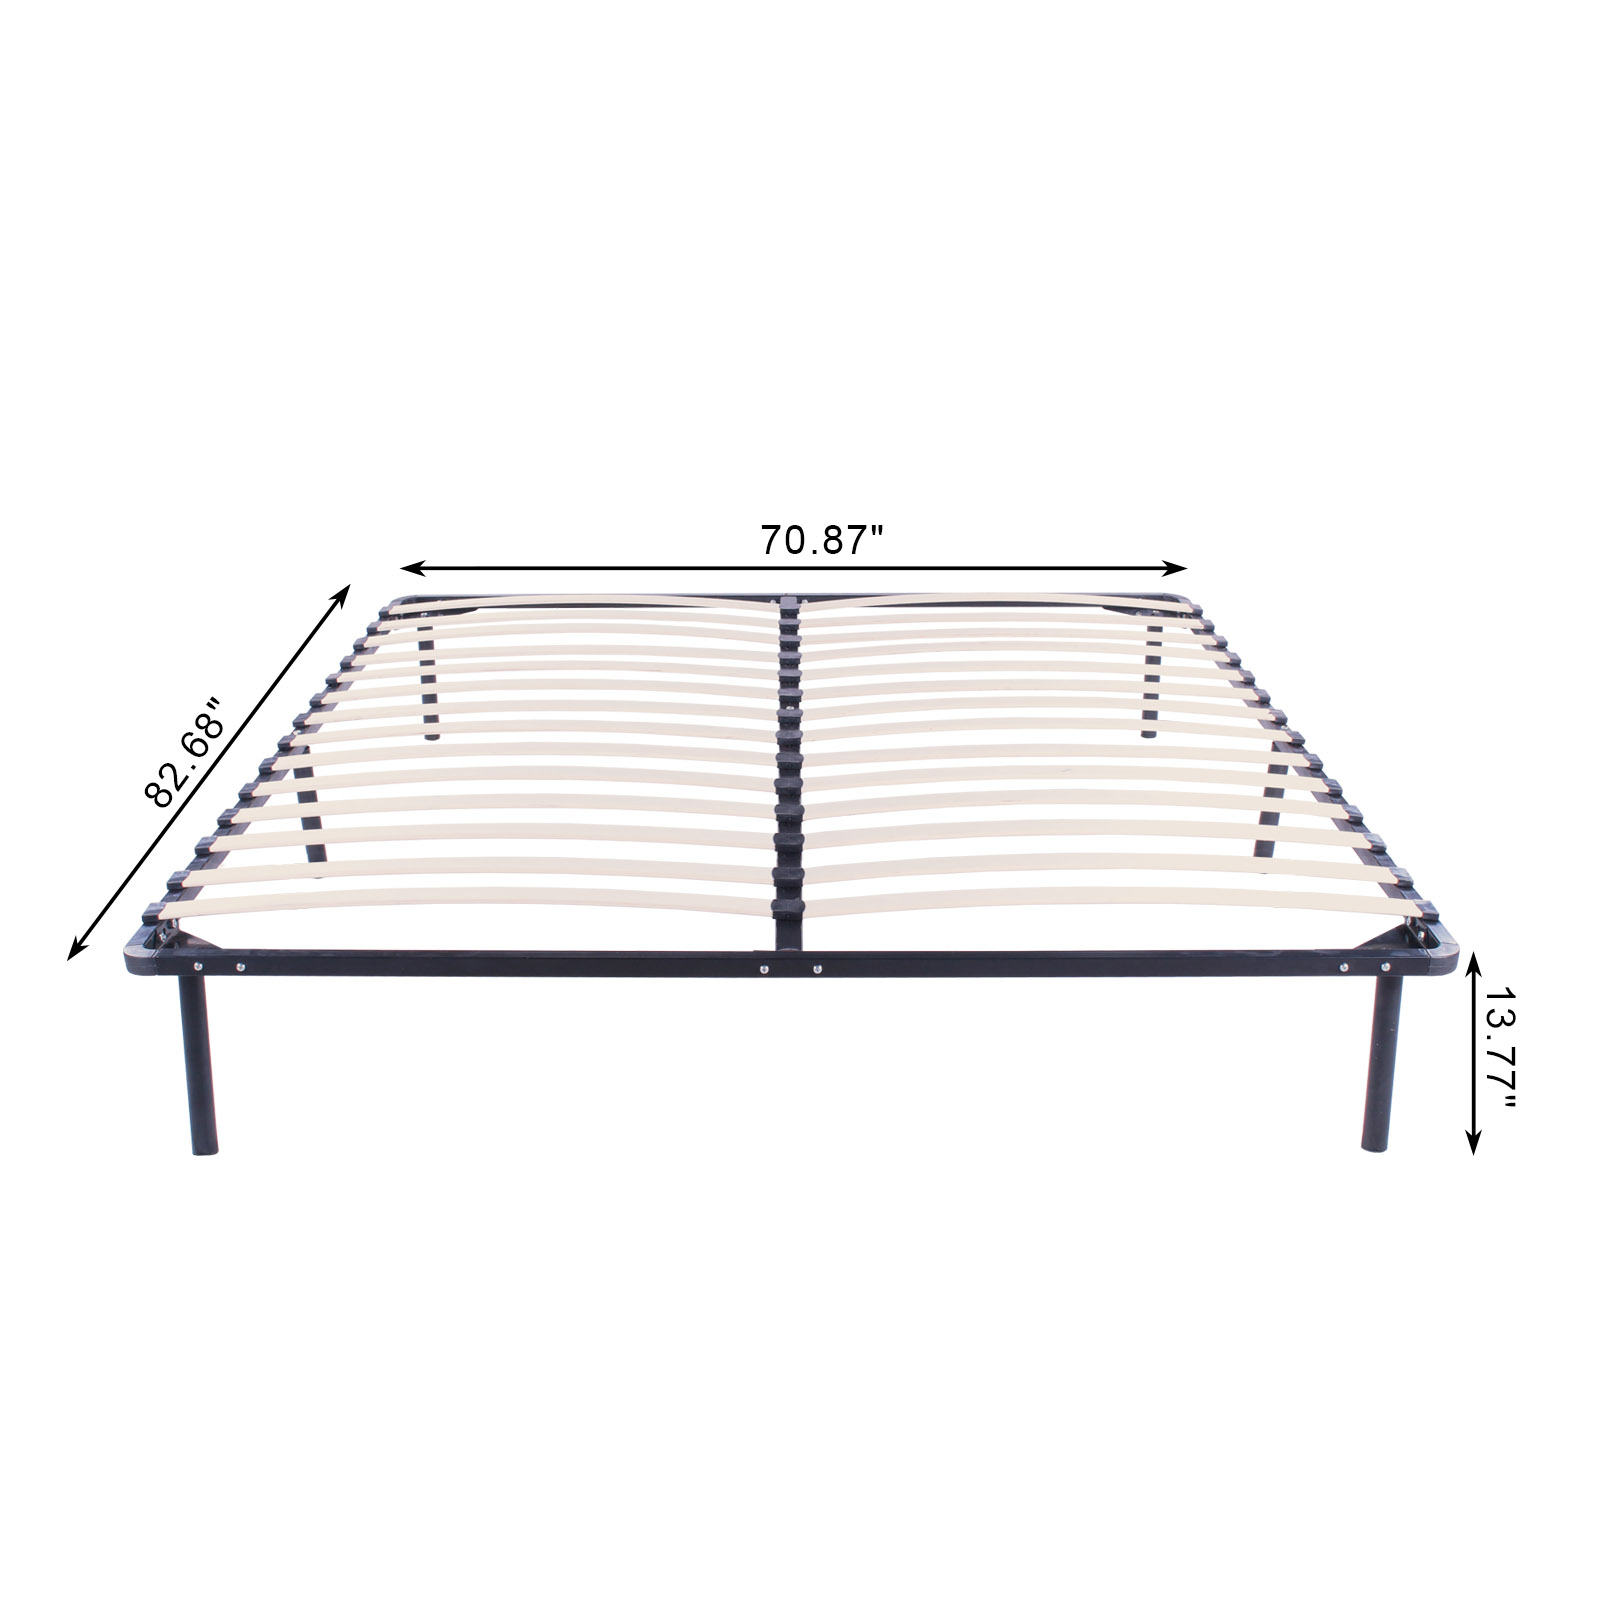 Full King Queen Size Wood Slats Metal Platform Bed Frame